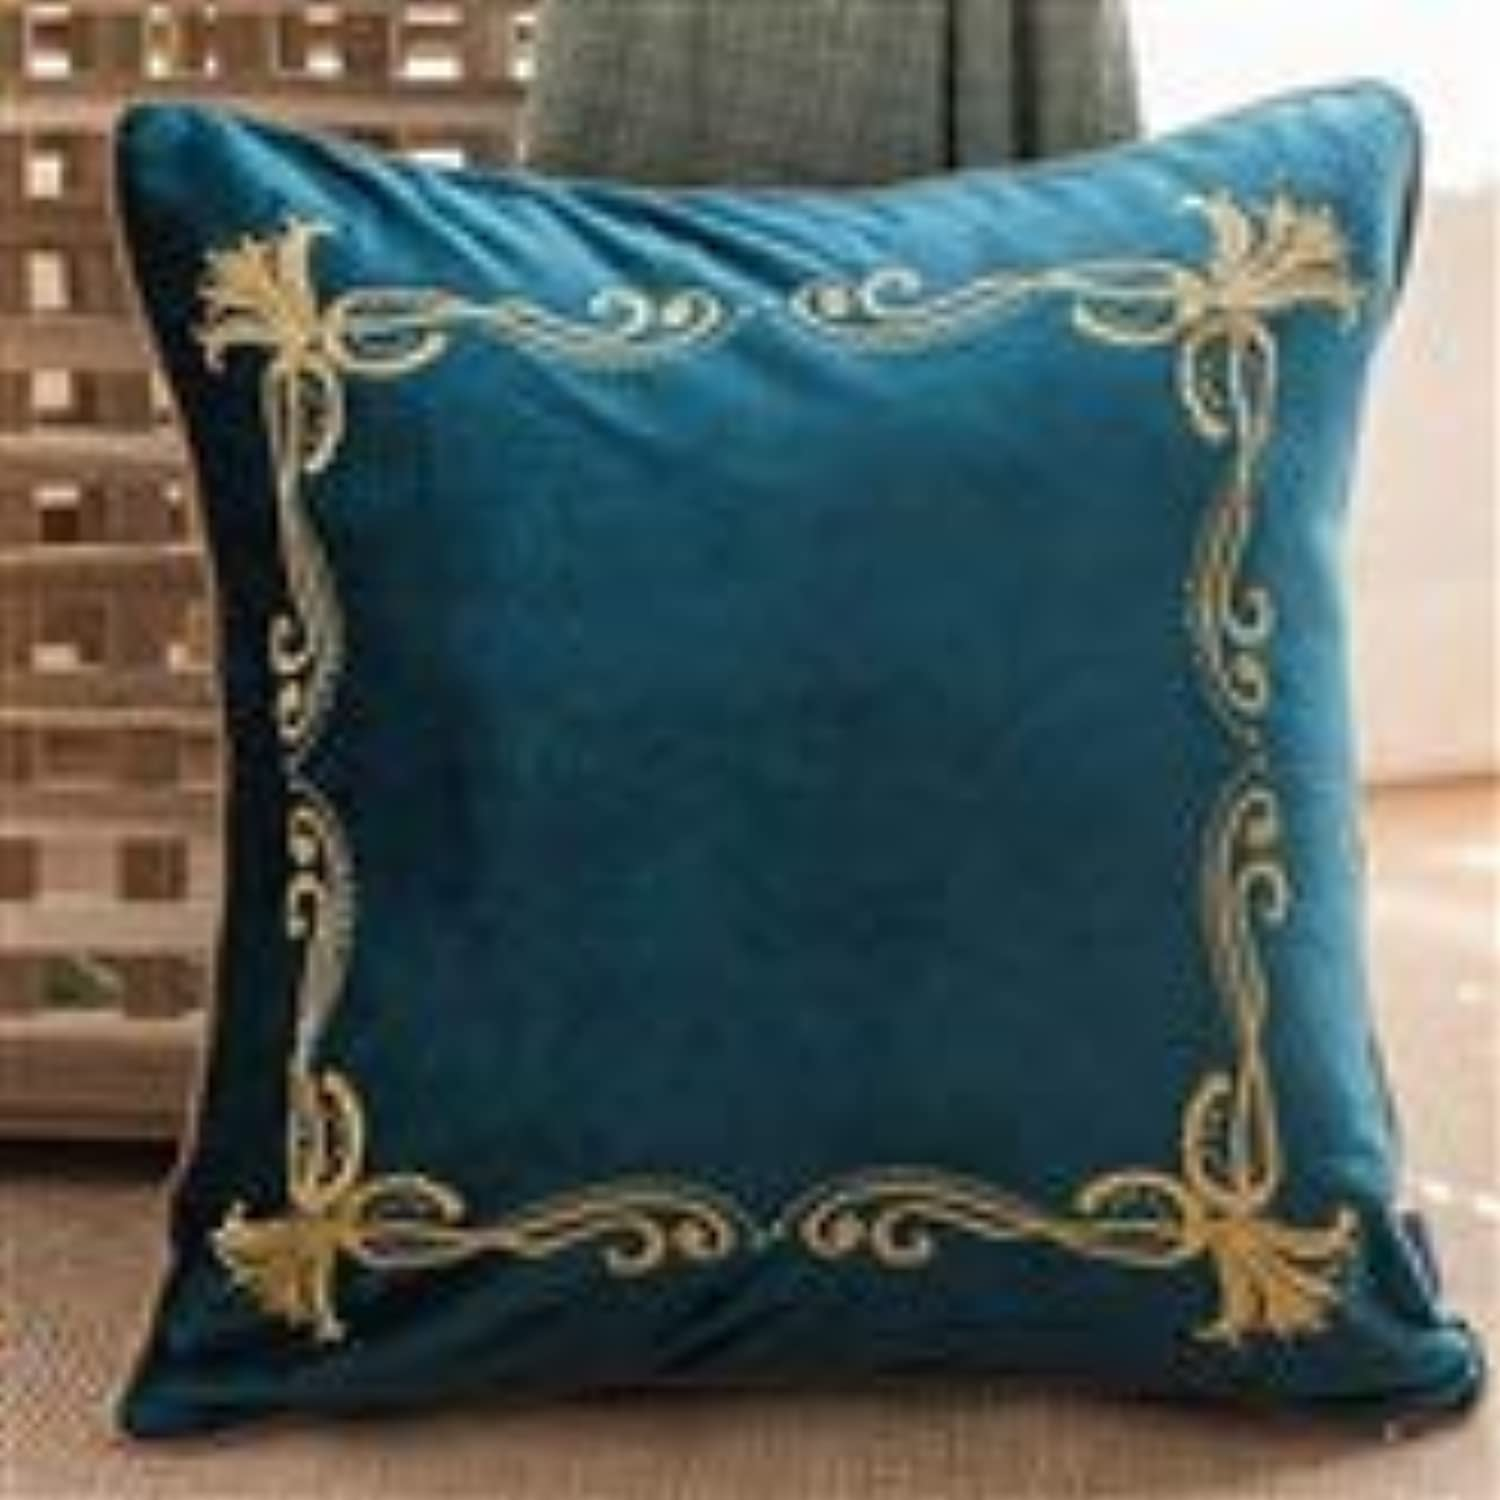 QYSZYG Pillow Thai Style Embroidery Pillow Sofa Cushion Soft and Comfortable Backrest Removable and Washable Pillow (color   B, Size   45cm45cm)